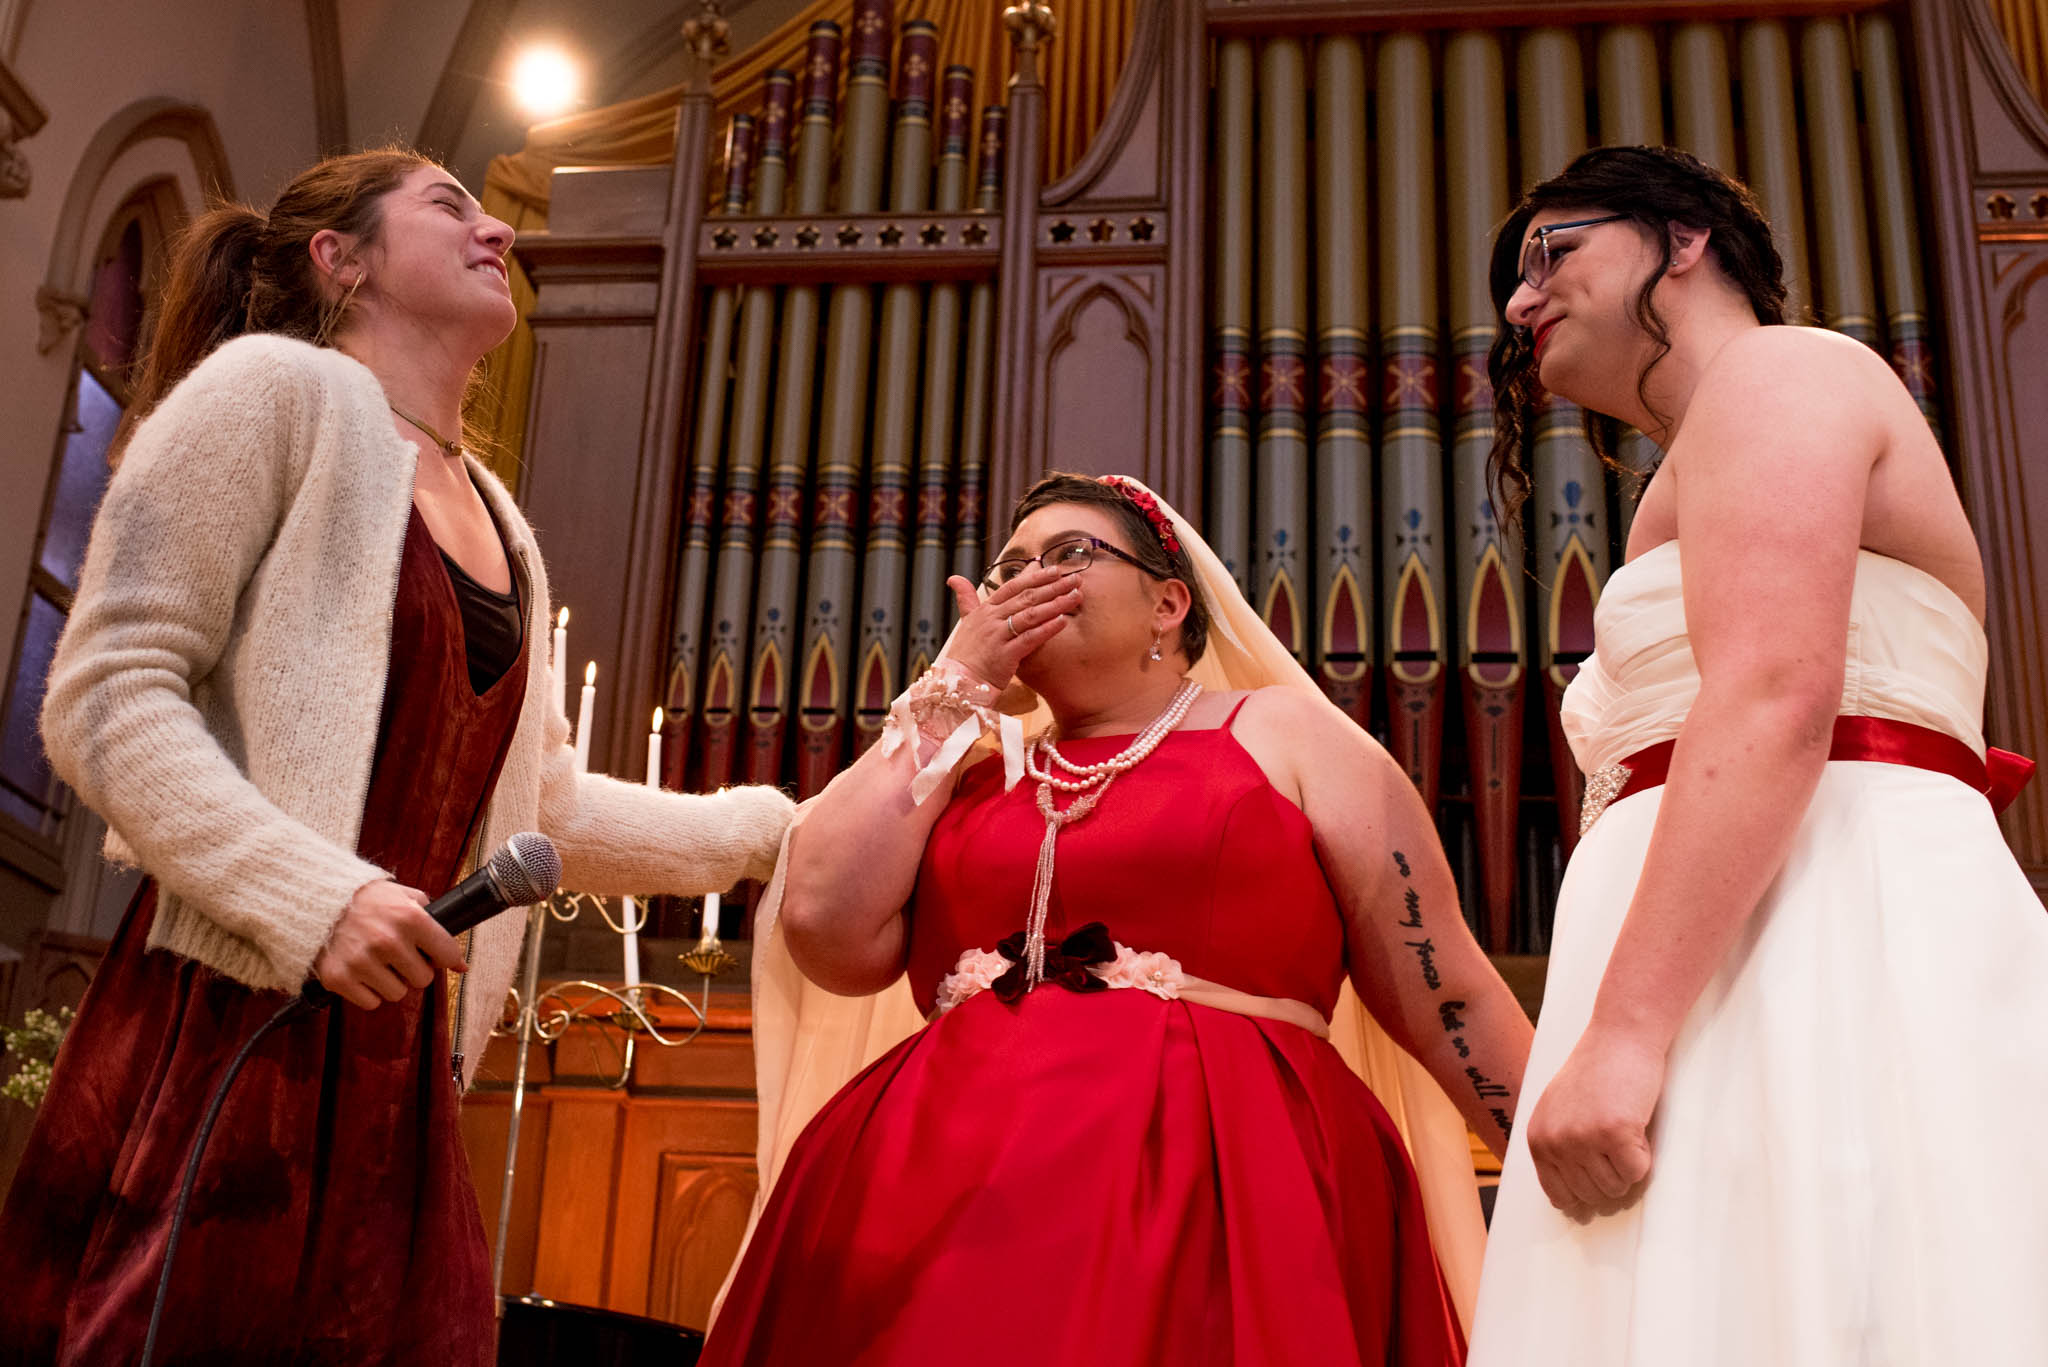 Brides laughing during wedding ceremony in front of old organ